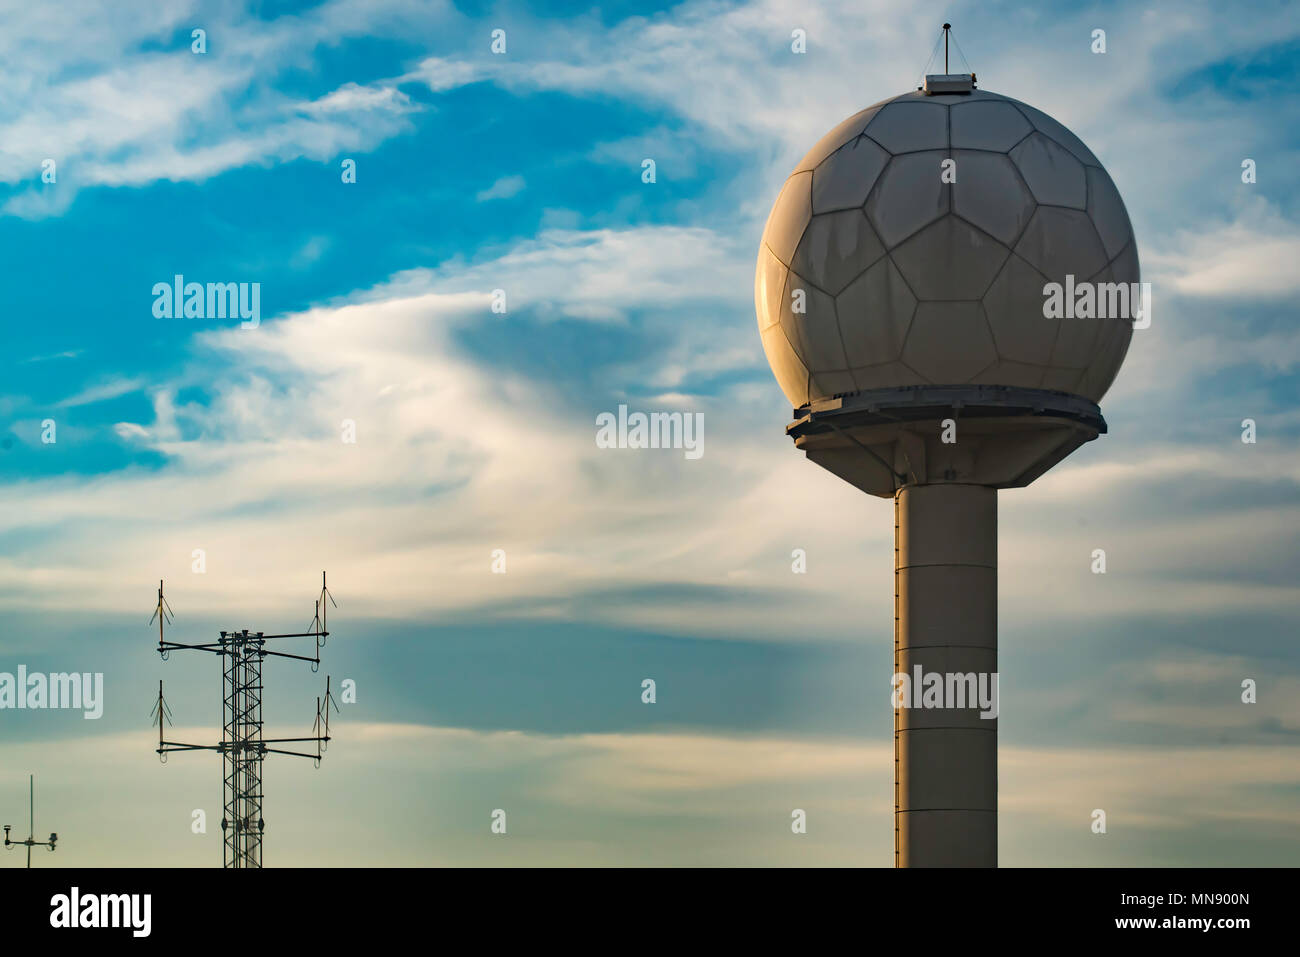 The Doppler or weather radar at Sydney Airport in Australia Stock Photo